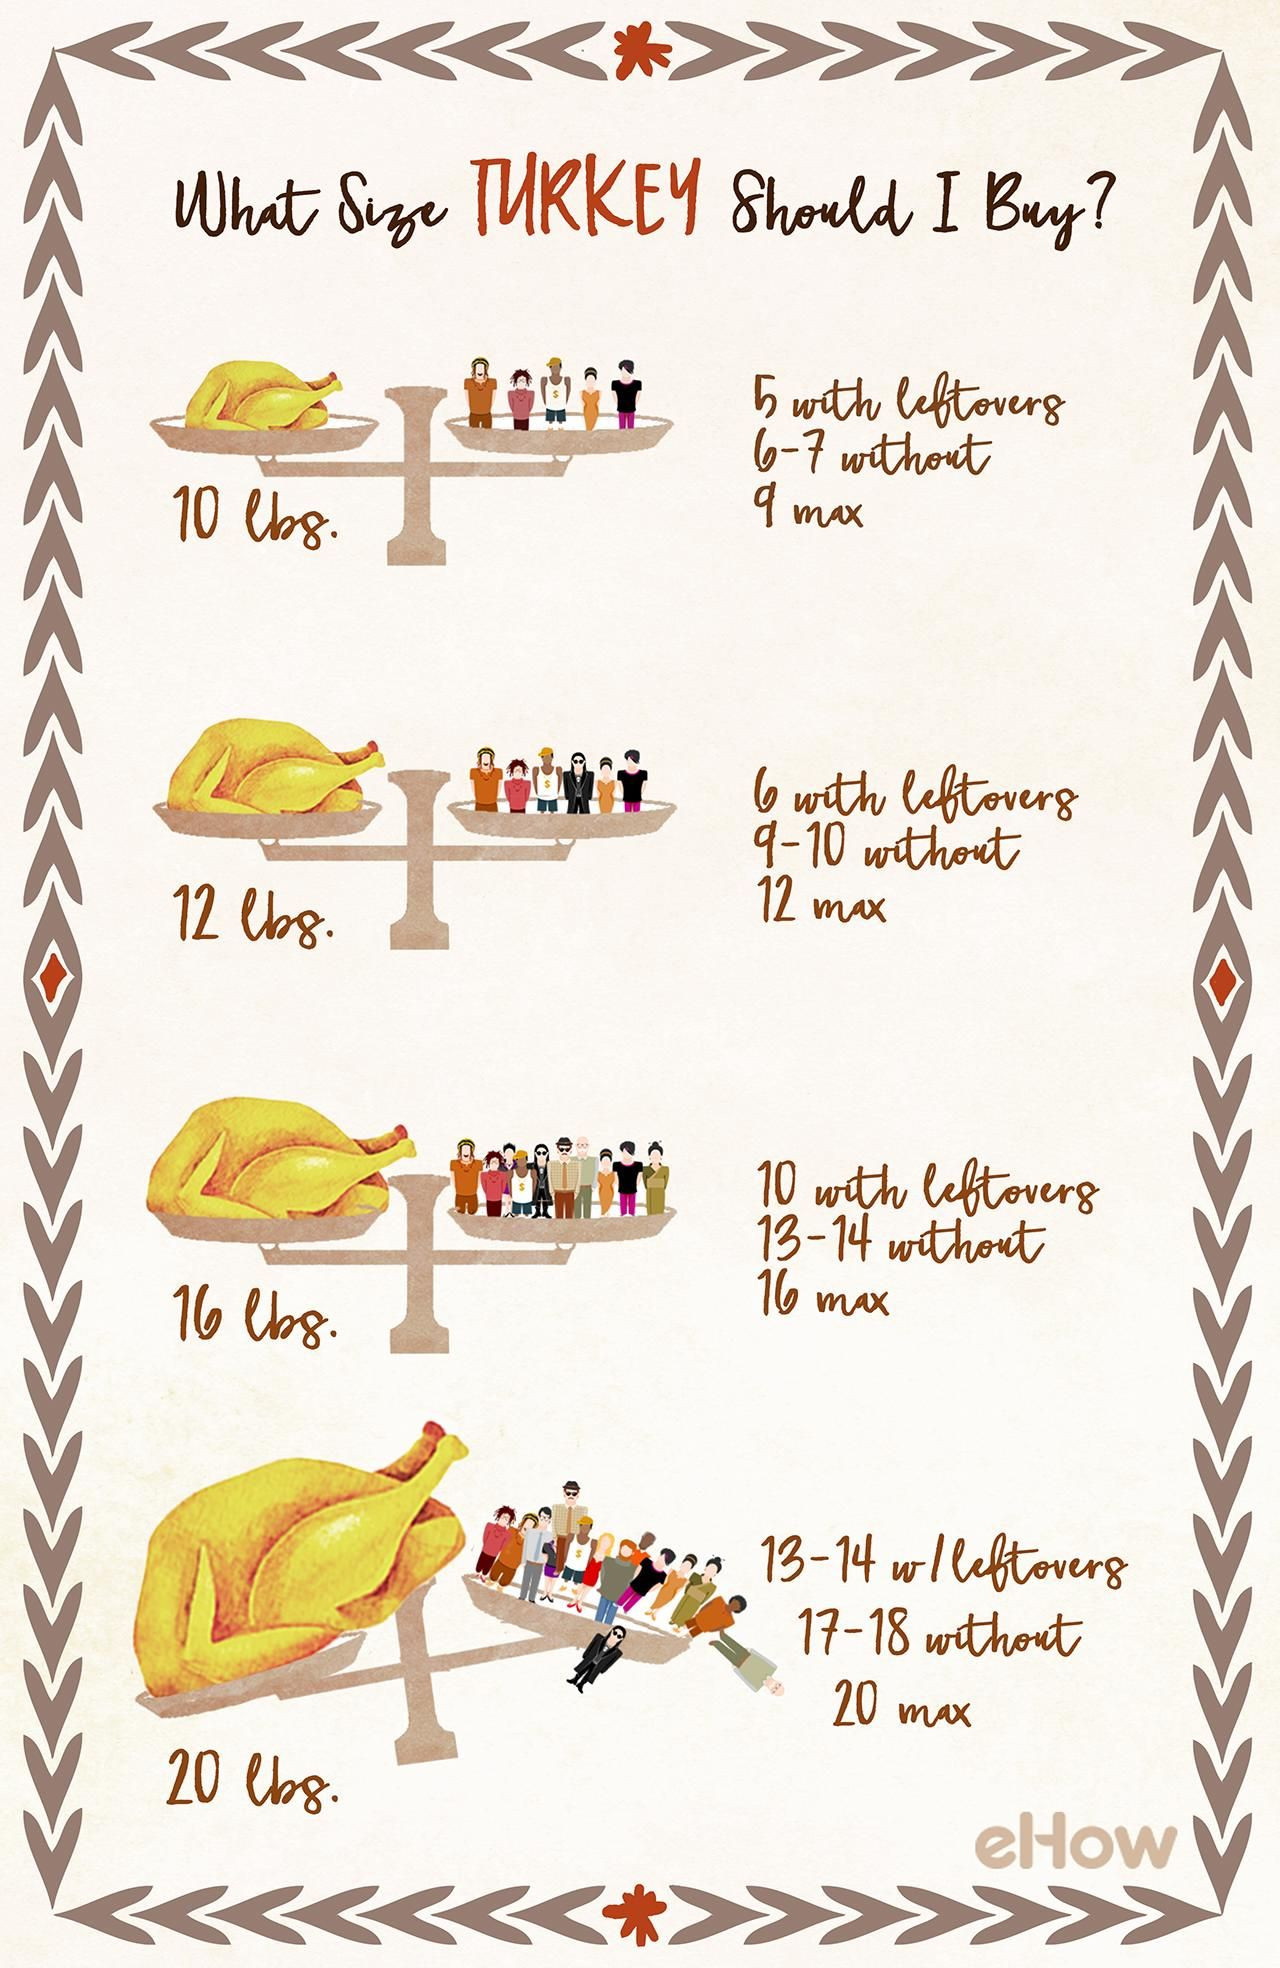 Pounds Of Turkey Per Person Thanksgiving  How to Figure Out What Size Turkey to Buy